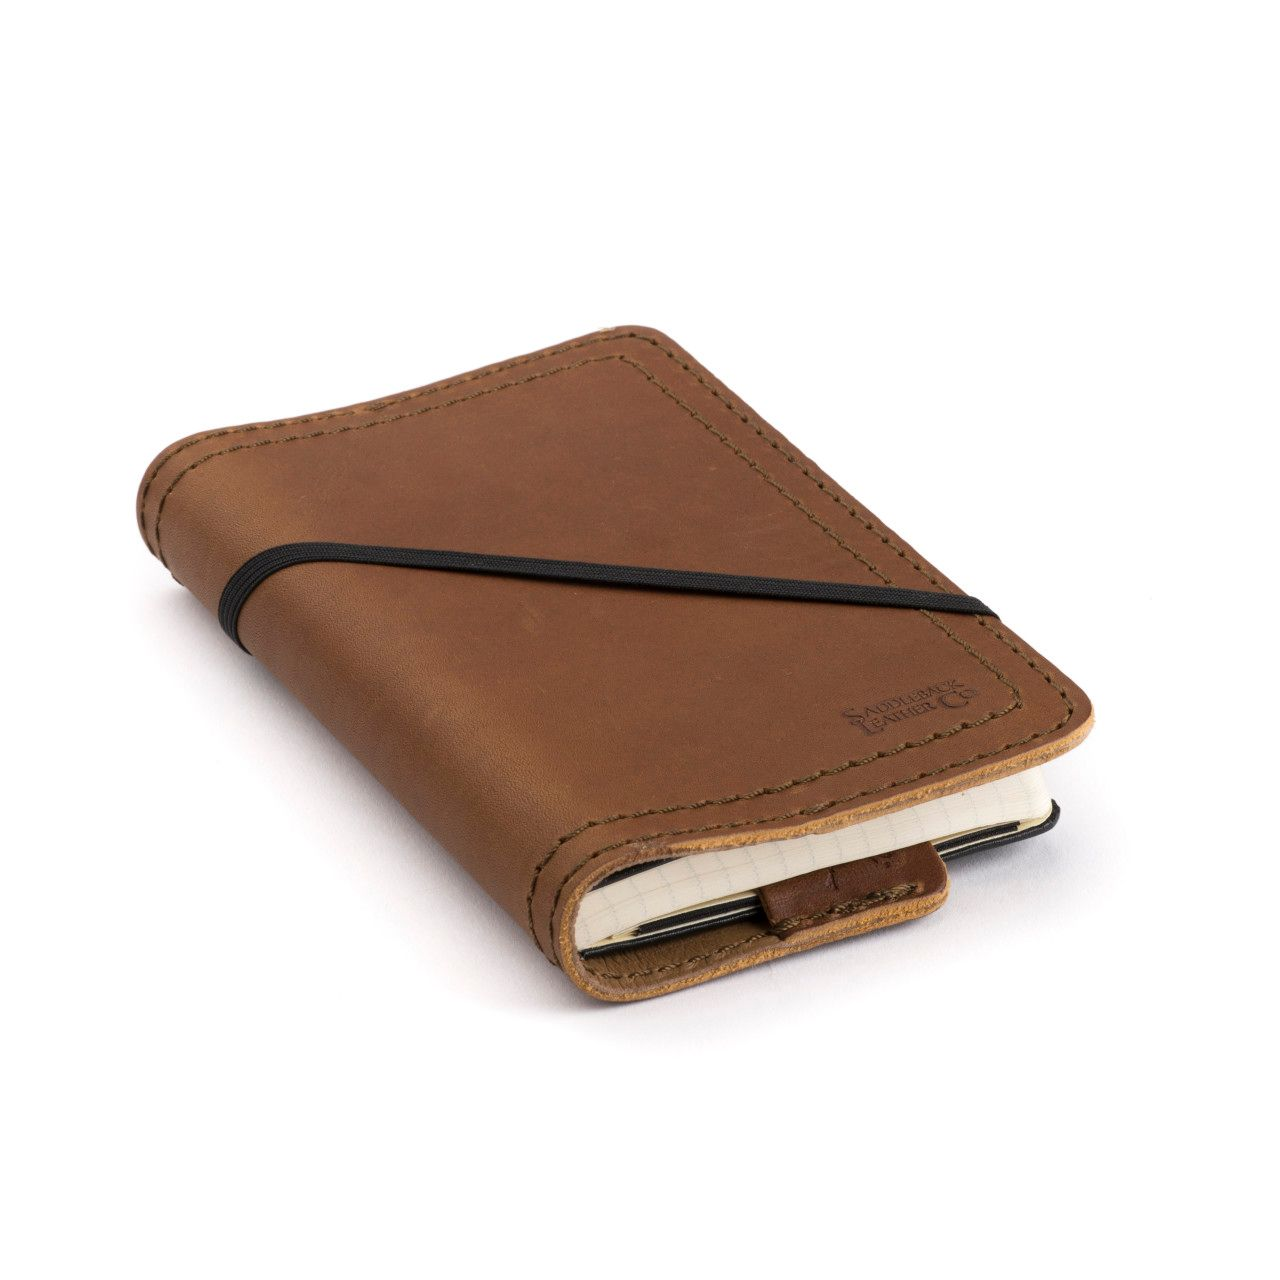 leather notebook cover small in tobacco leather